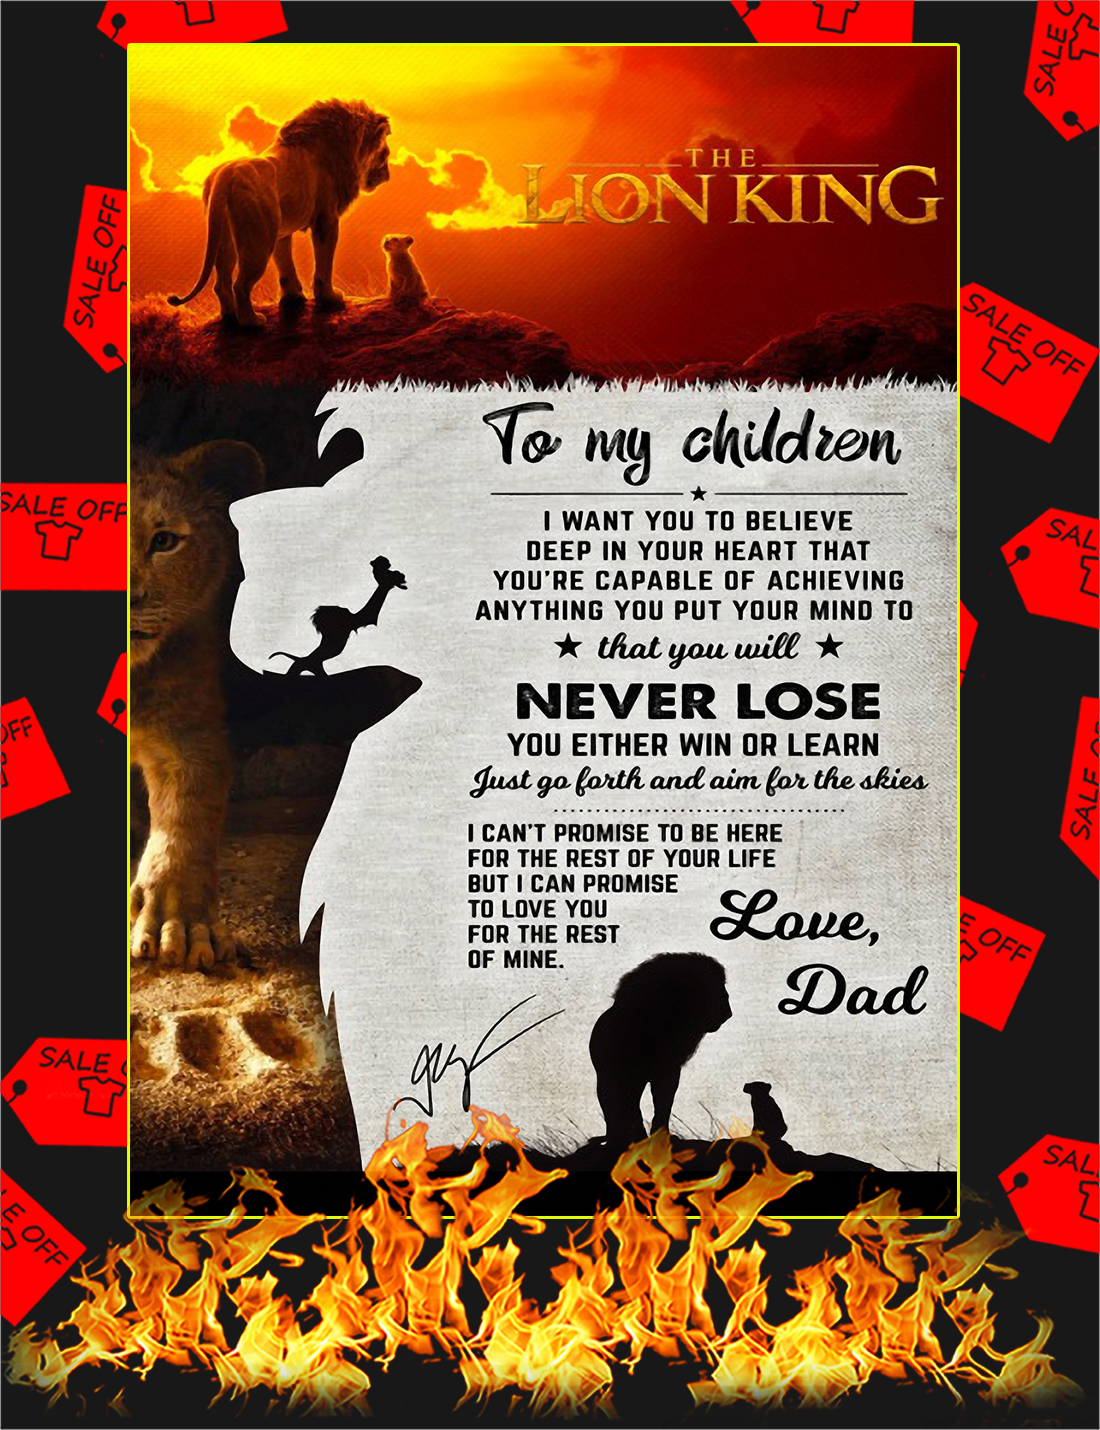 The lion king to my children love dad poster - A4